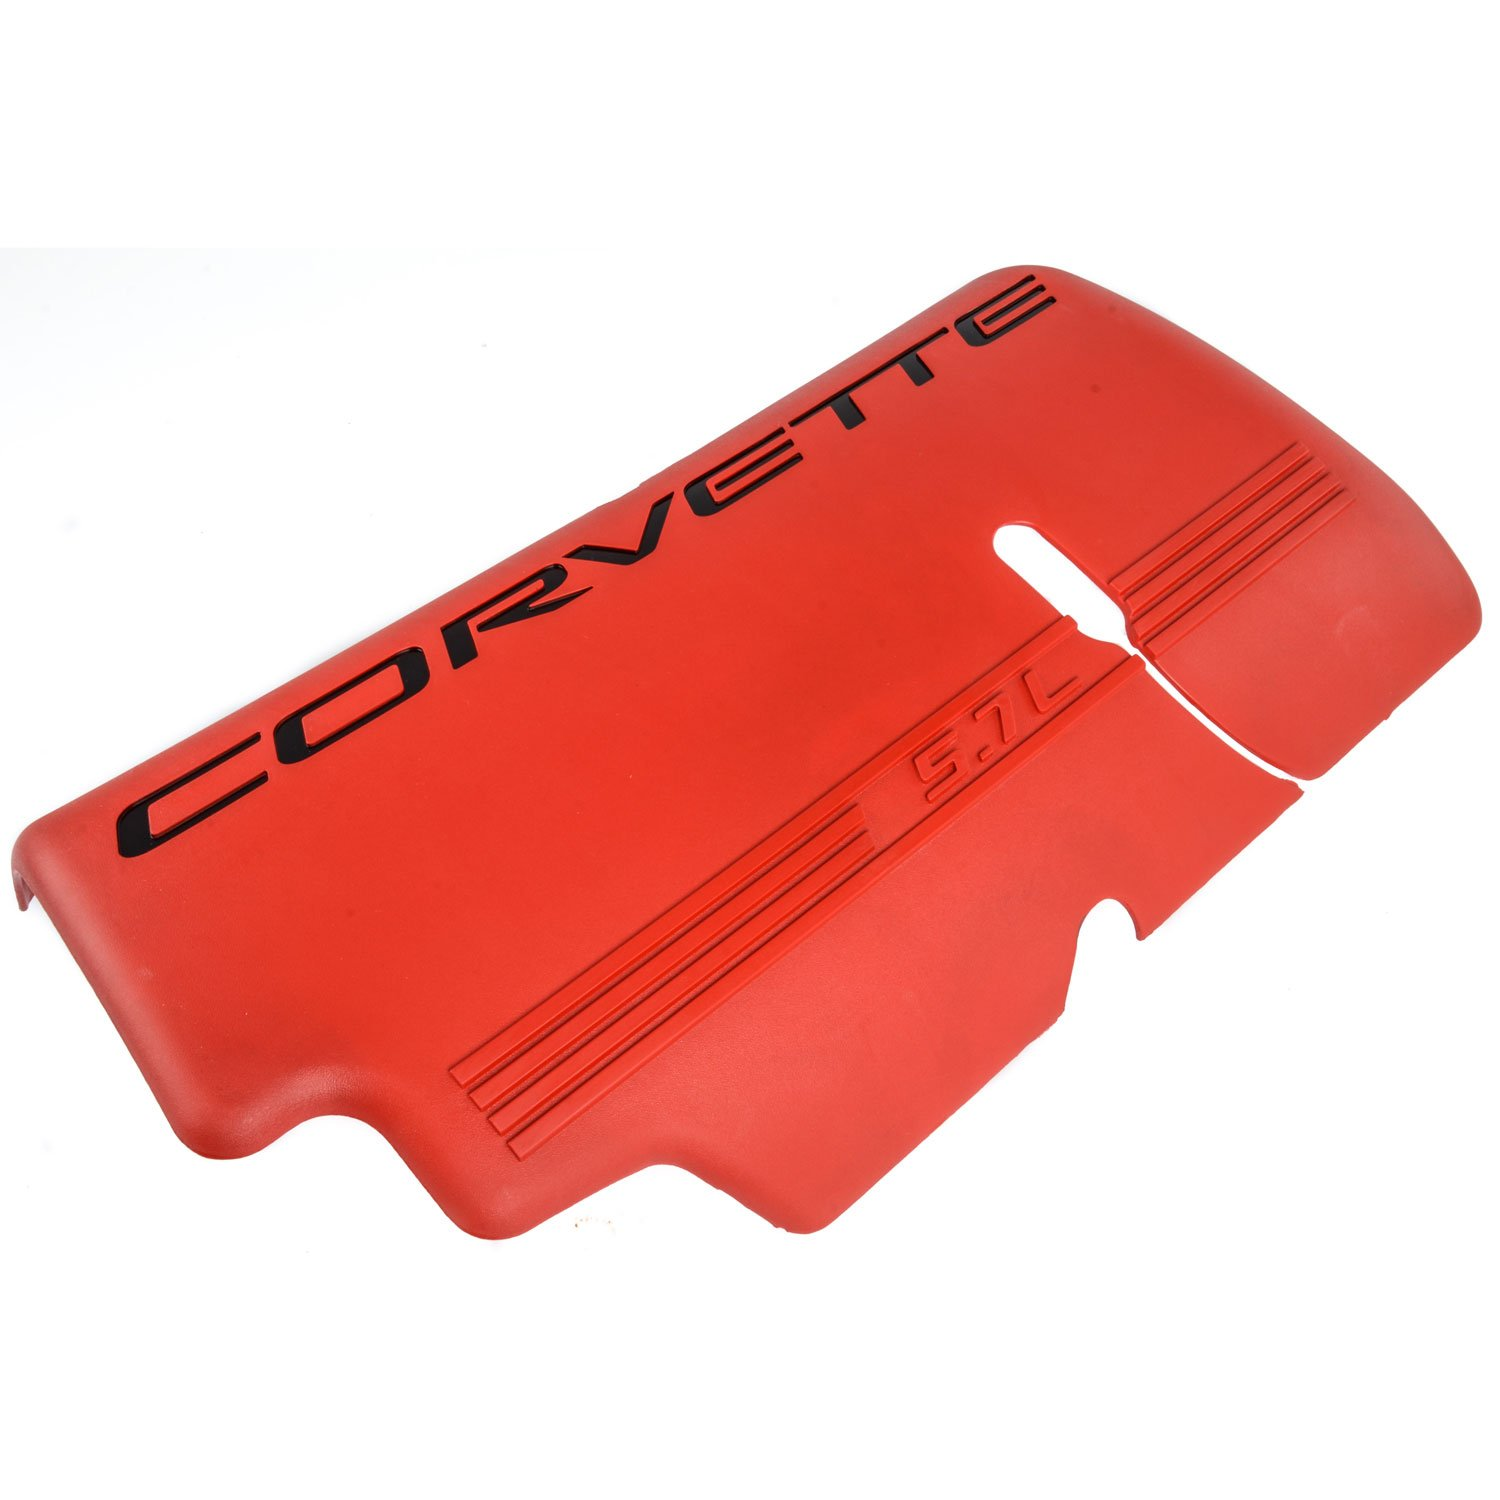 Chevrolet Performance 12564257 - Chevrolet Performance Coil Covers